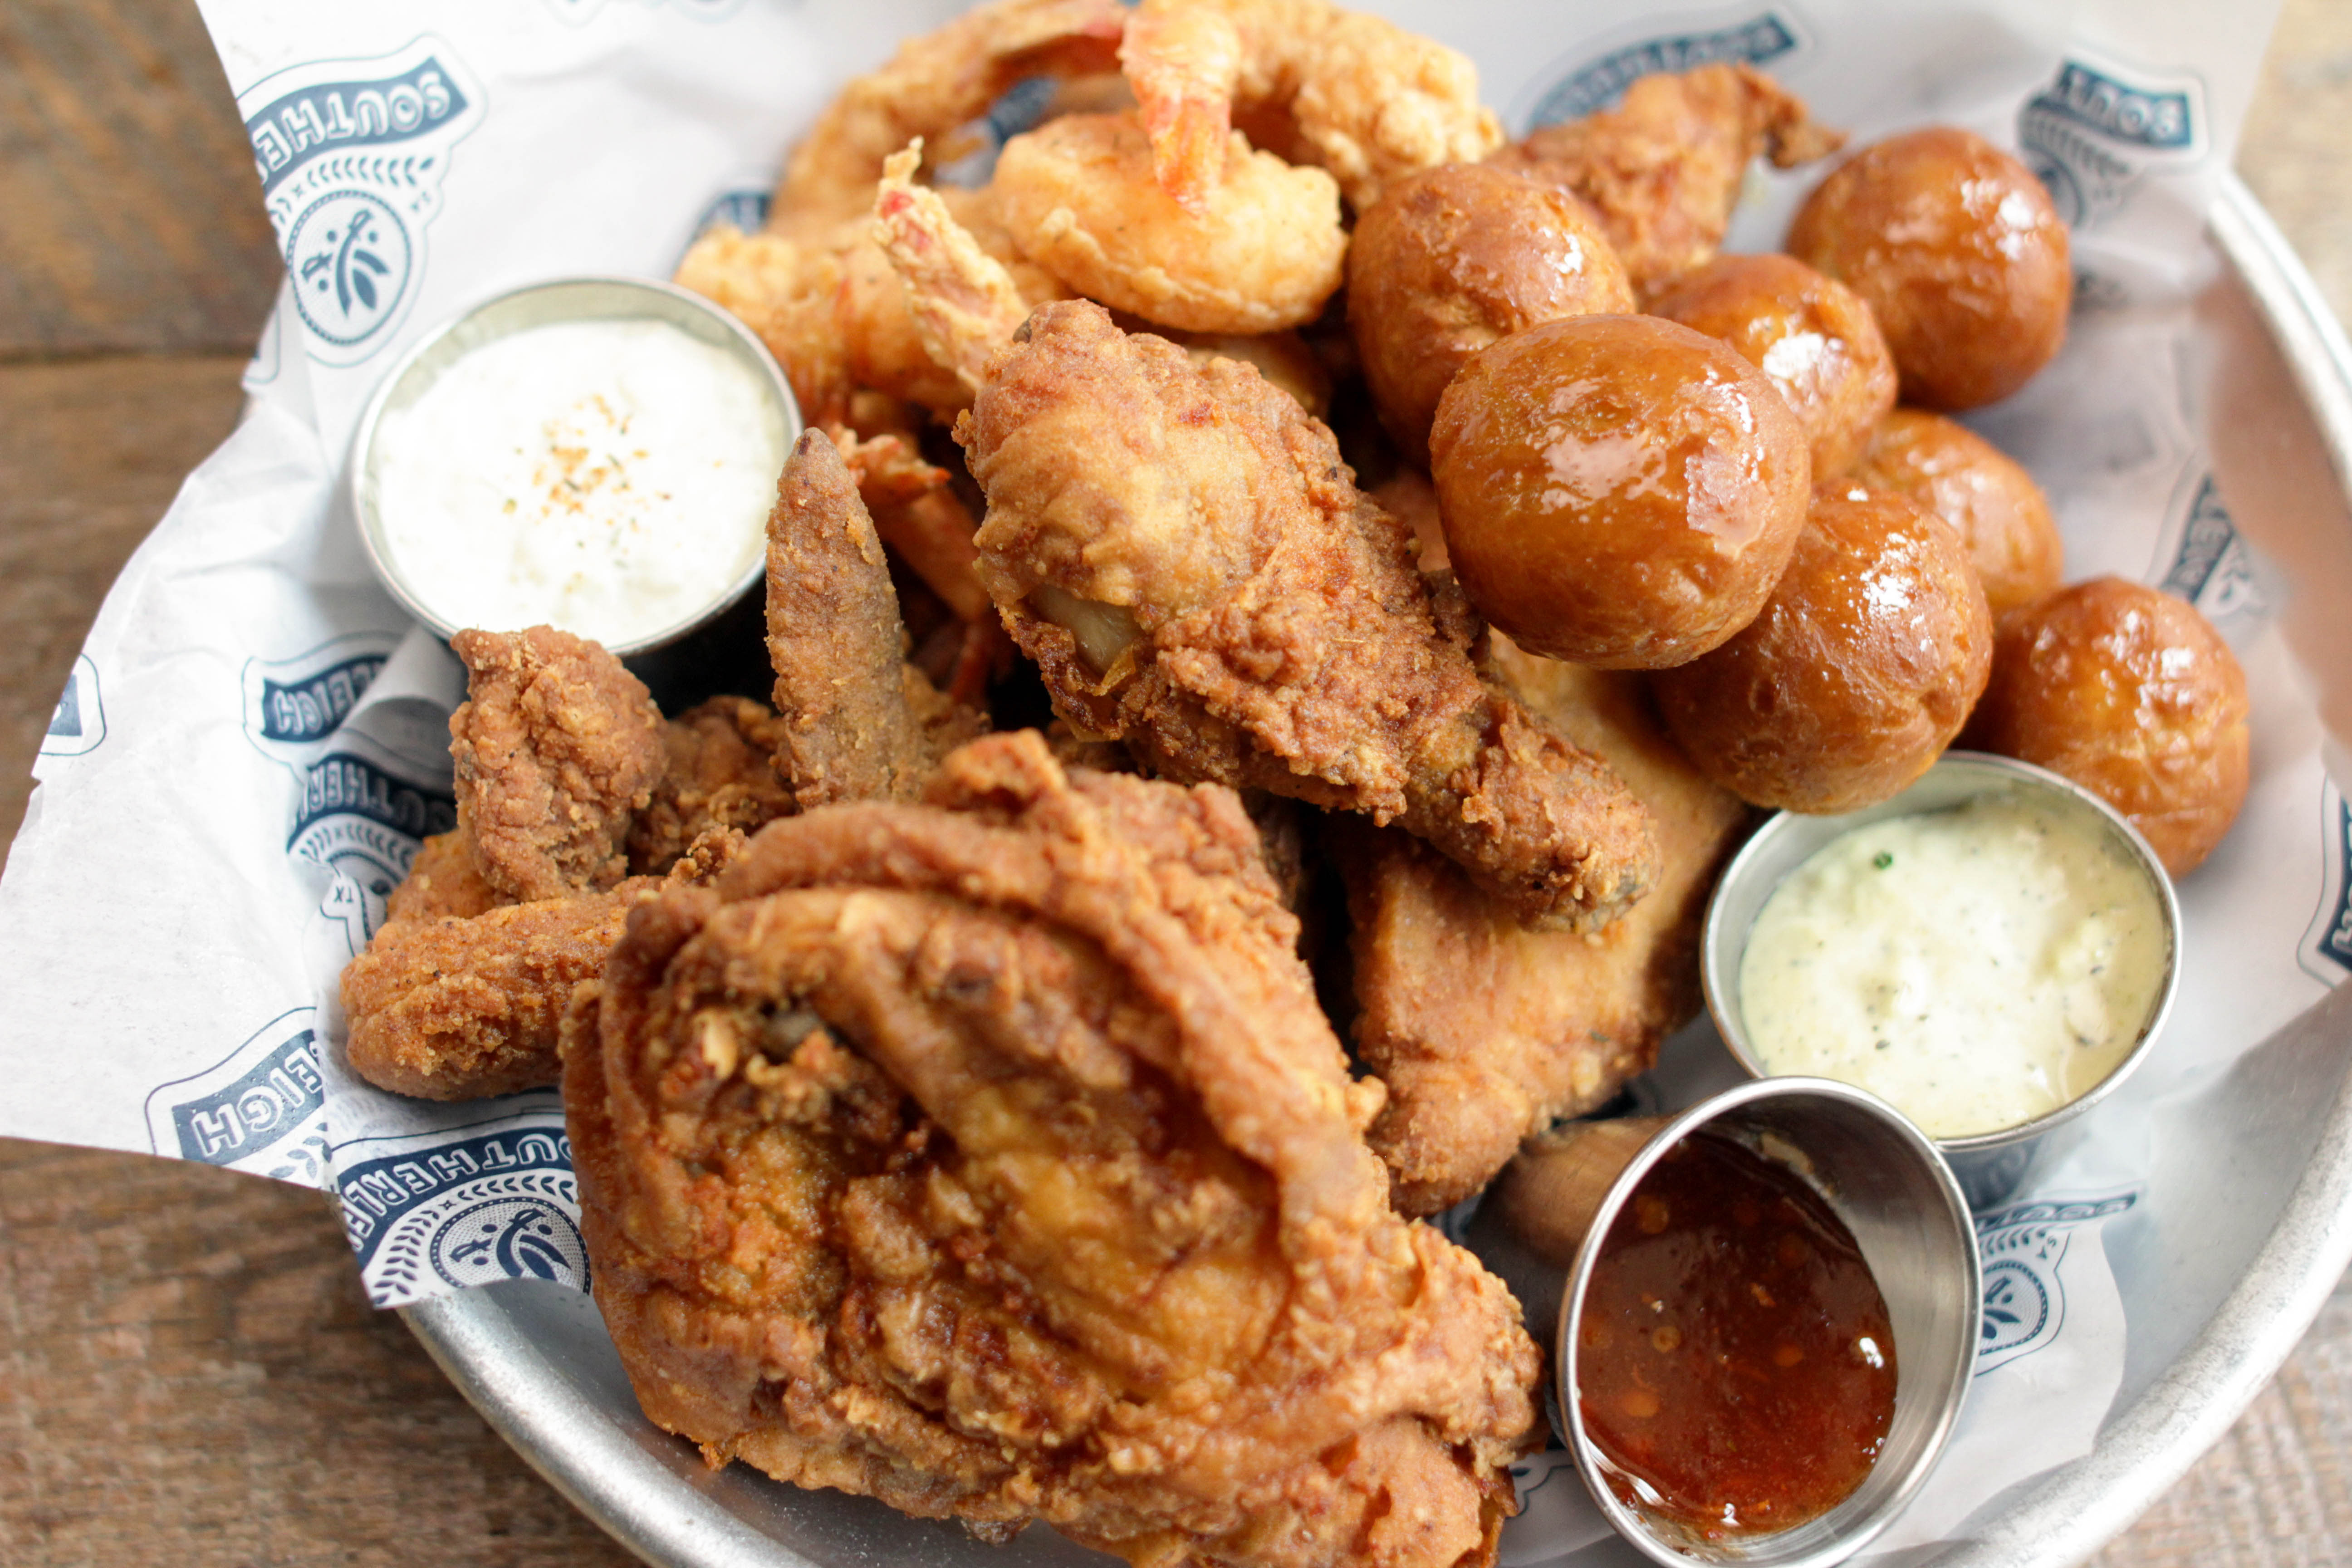 Fried chicken and sides from Southerleigh Bird & Biscuit